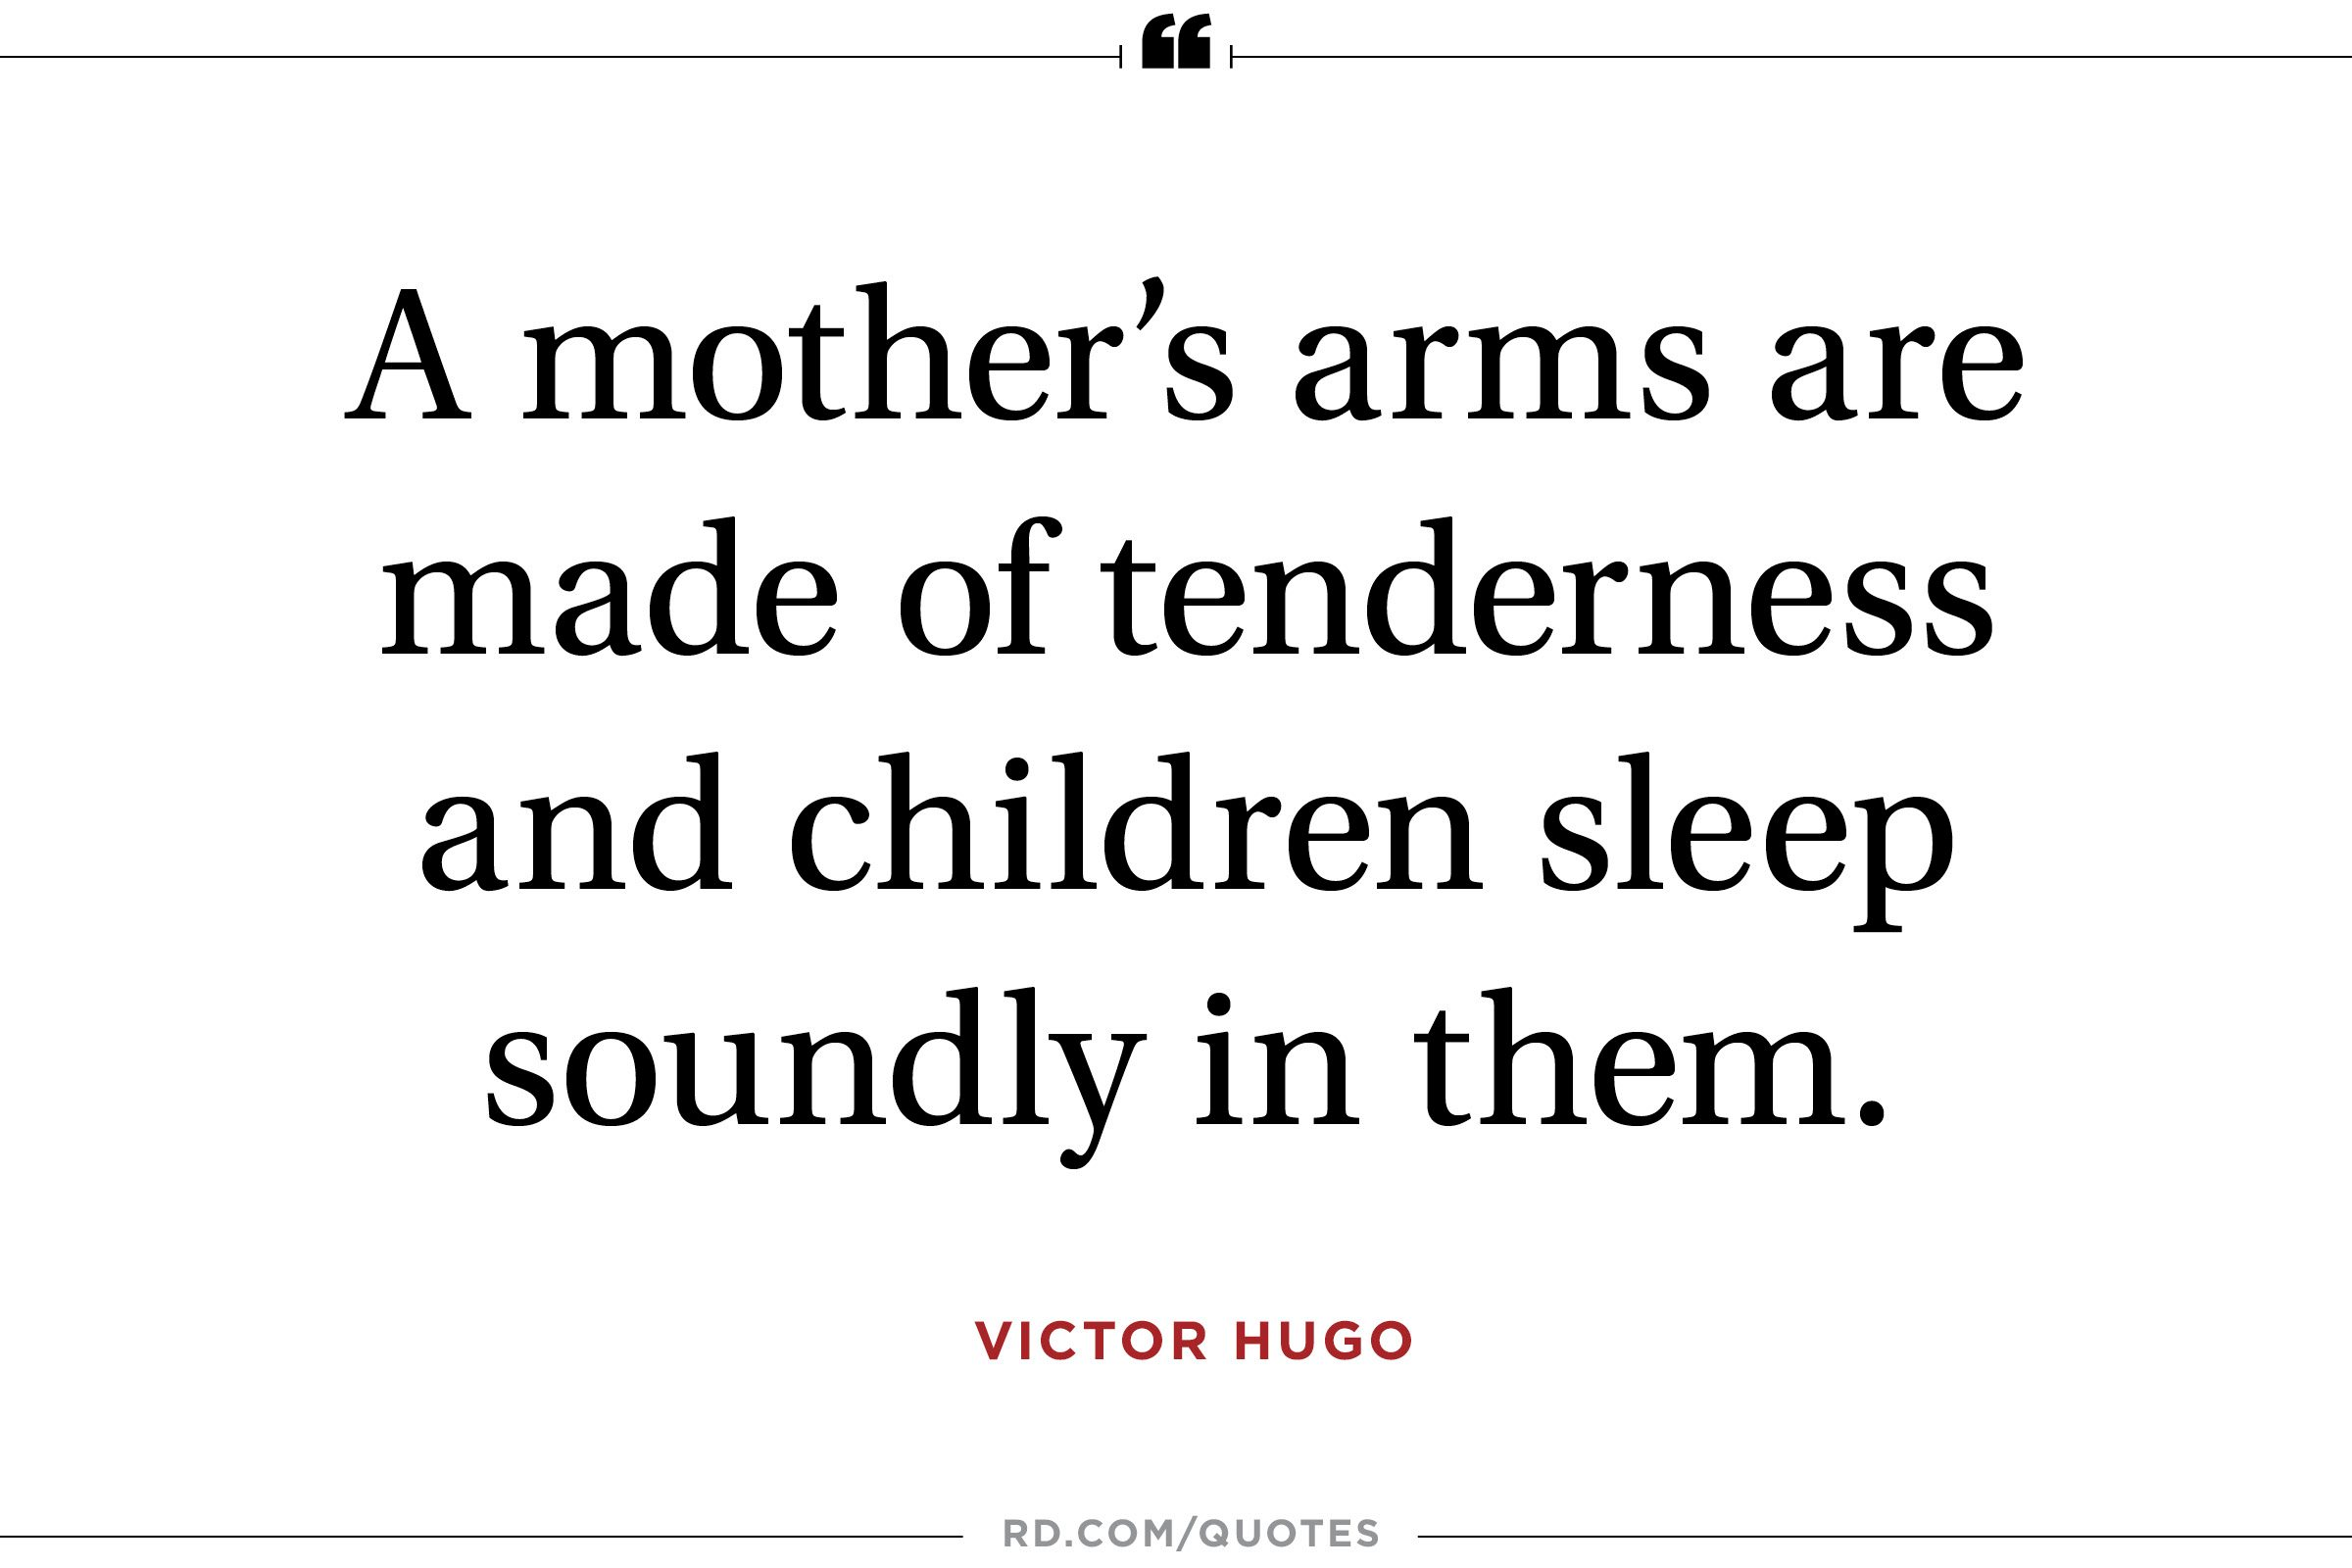 A mother's arms are made of tenderness